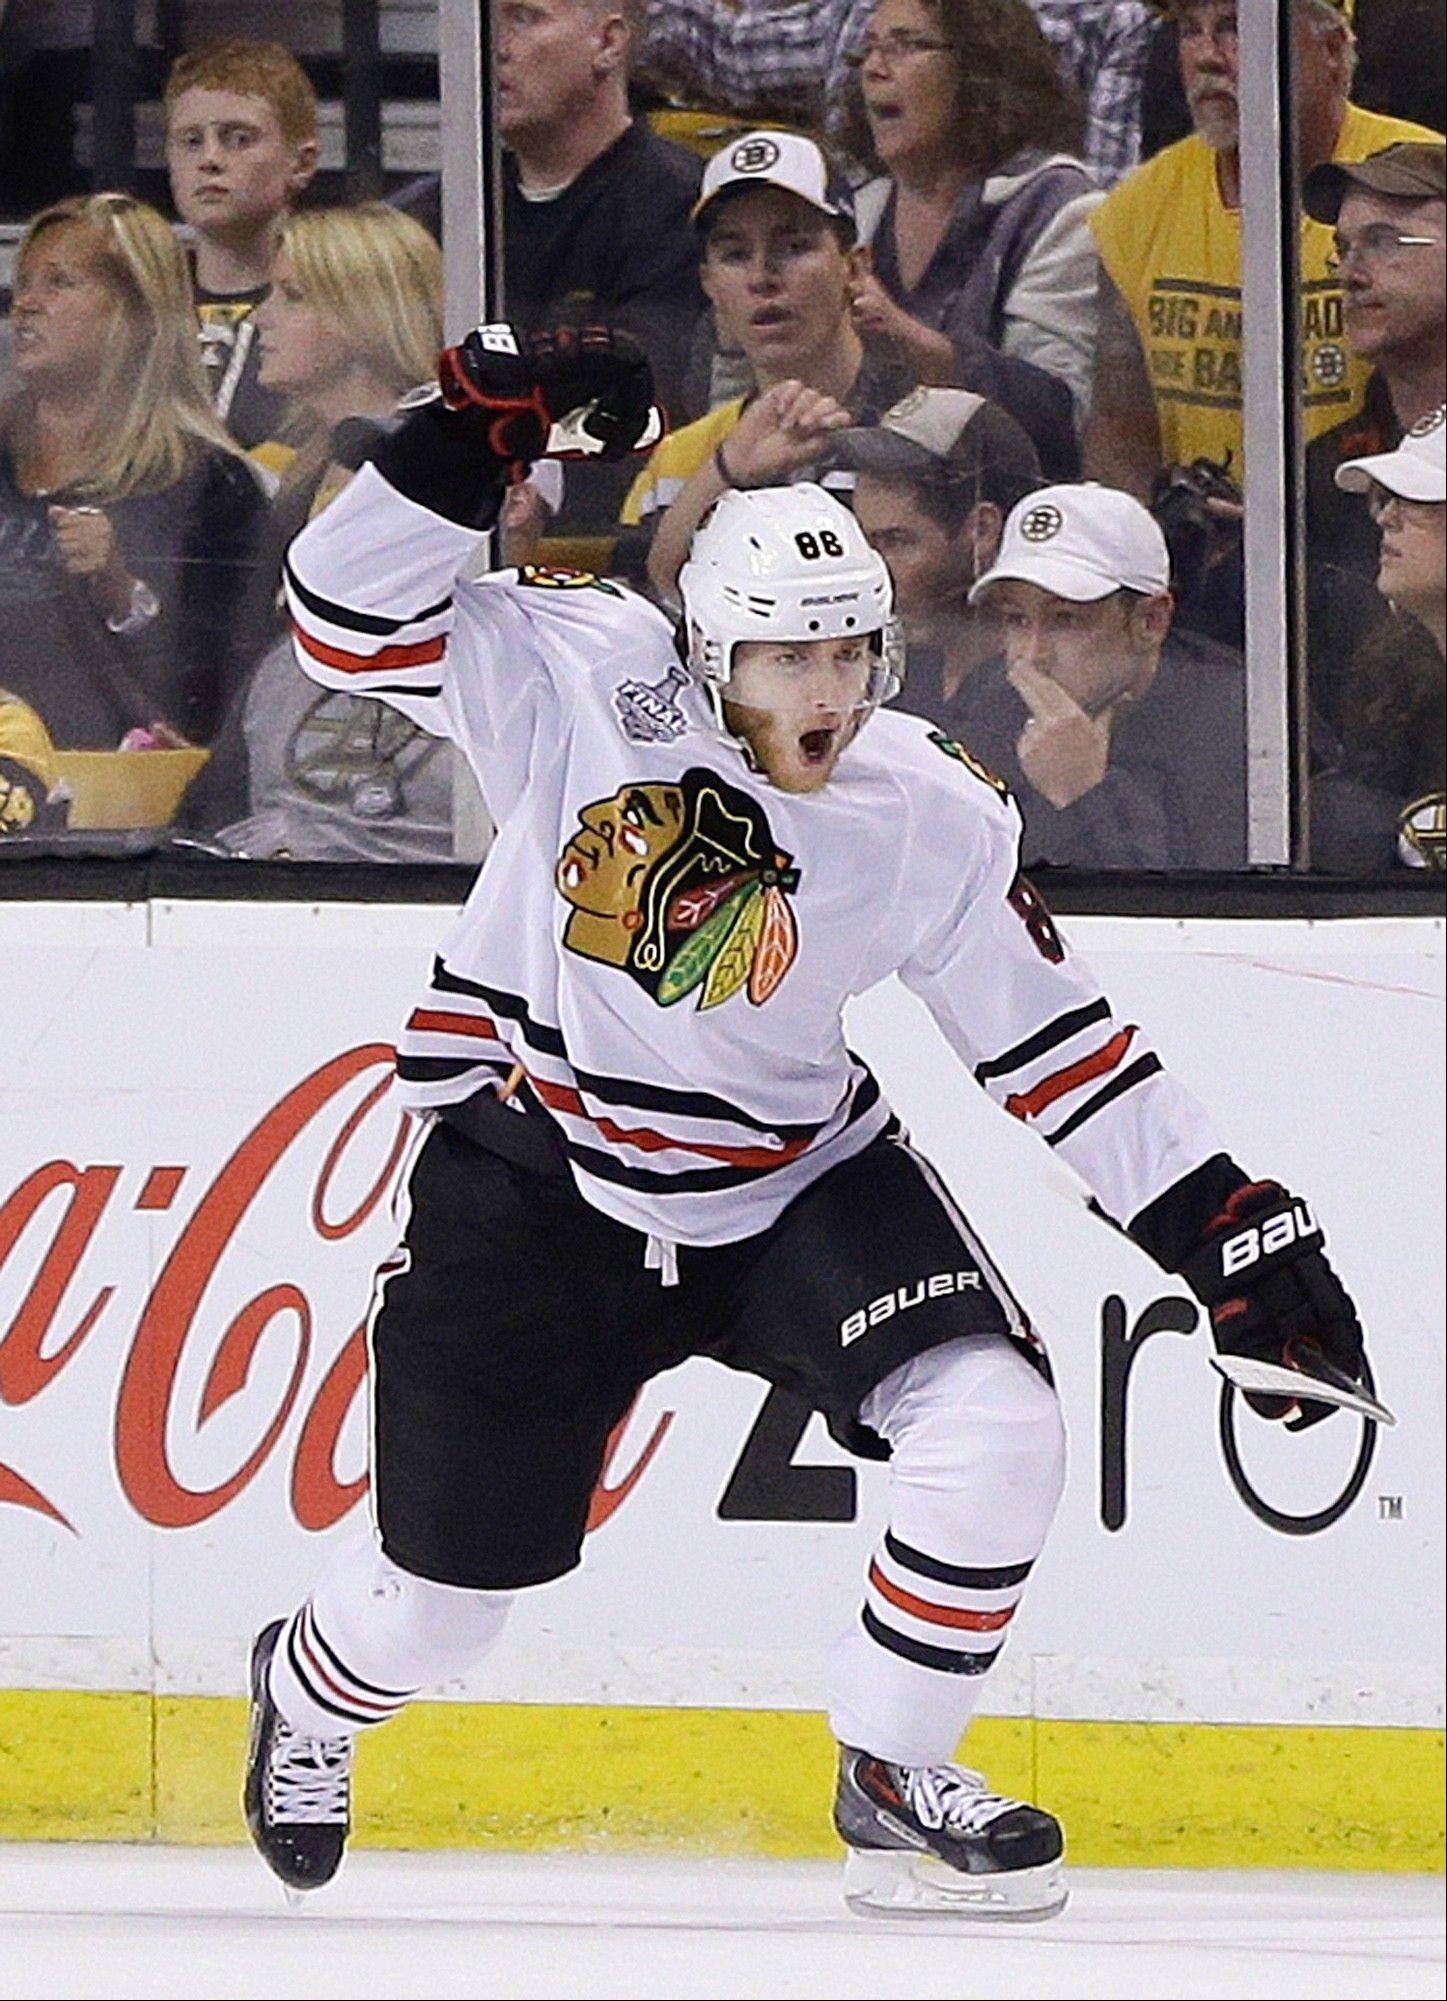 Chicago Blackhawks right wing Patrick Kane (88) celebrates his goal against the Boston Bruins during the second period in Game 4 of the NHL hockey Stanley Cup Finals.